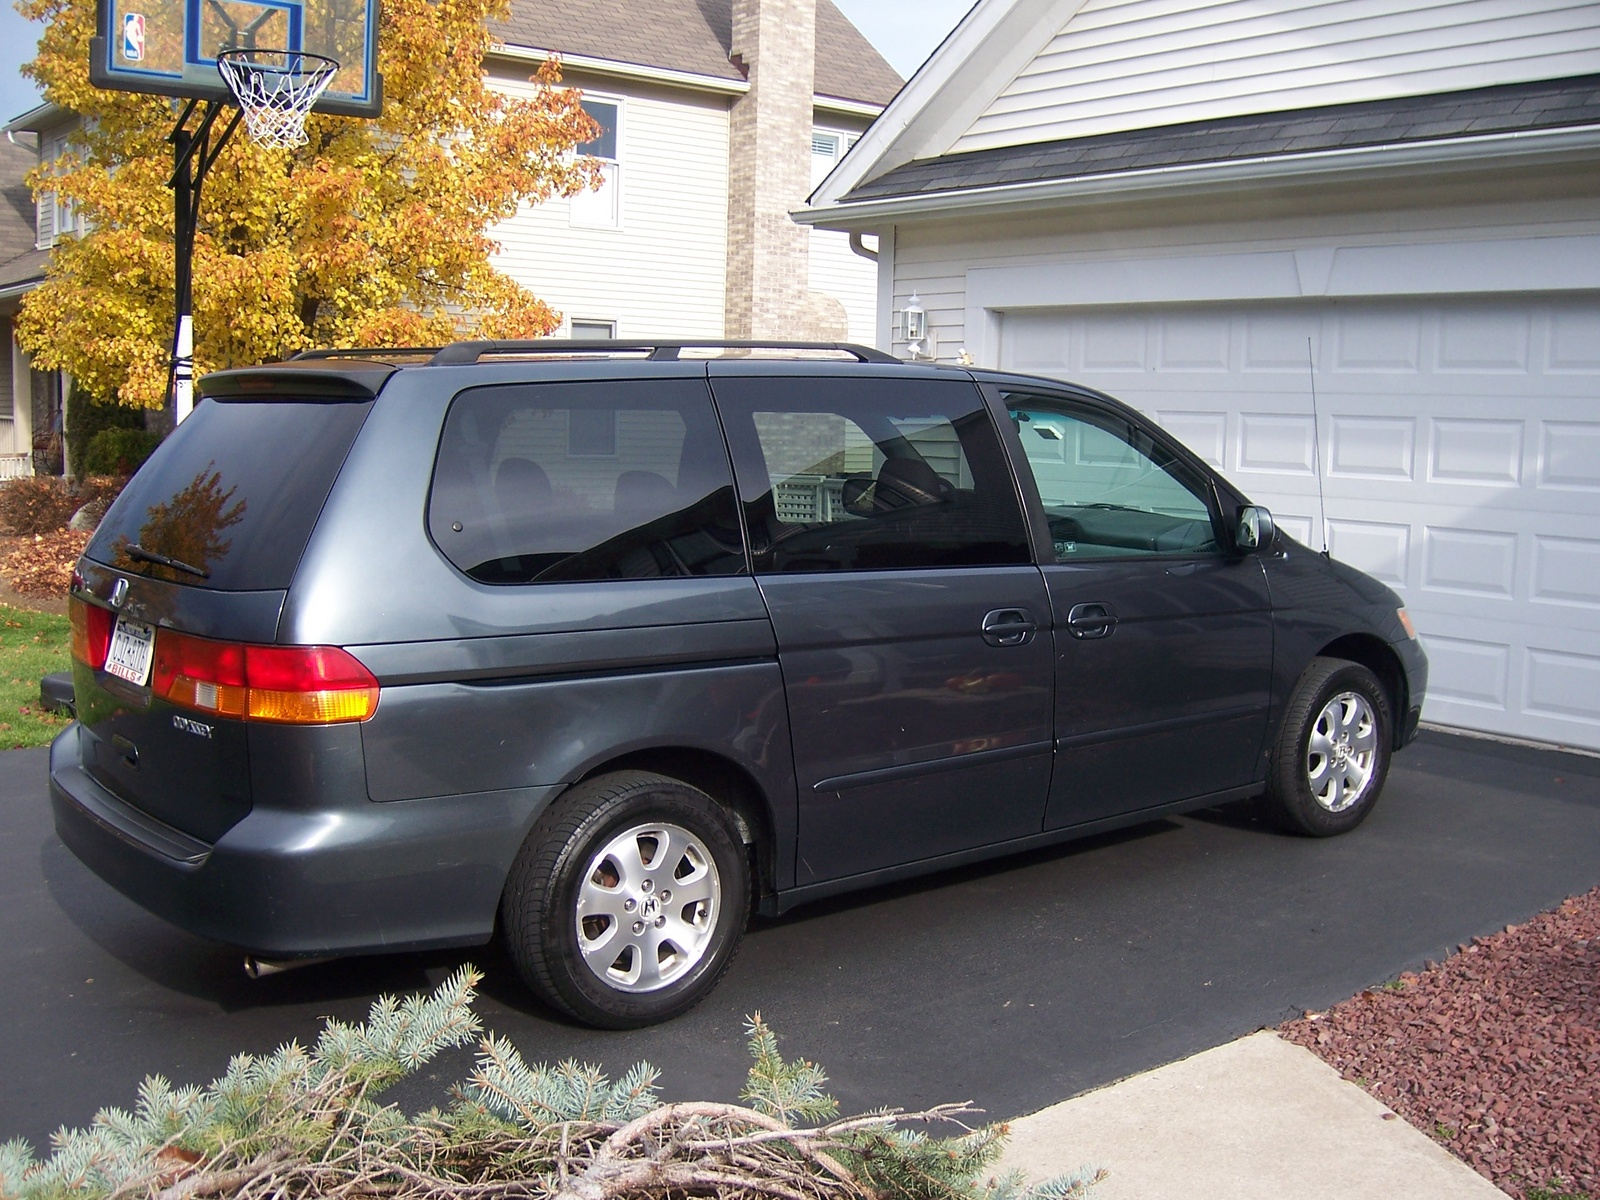 honda odyssey 2003 review amazing pictures and images look at the car. Black Bedroom Furniture Sets. Home Design Ideas